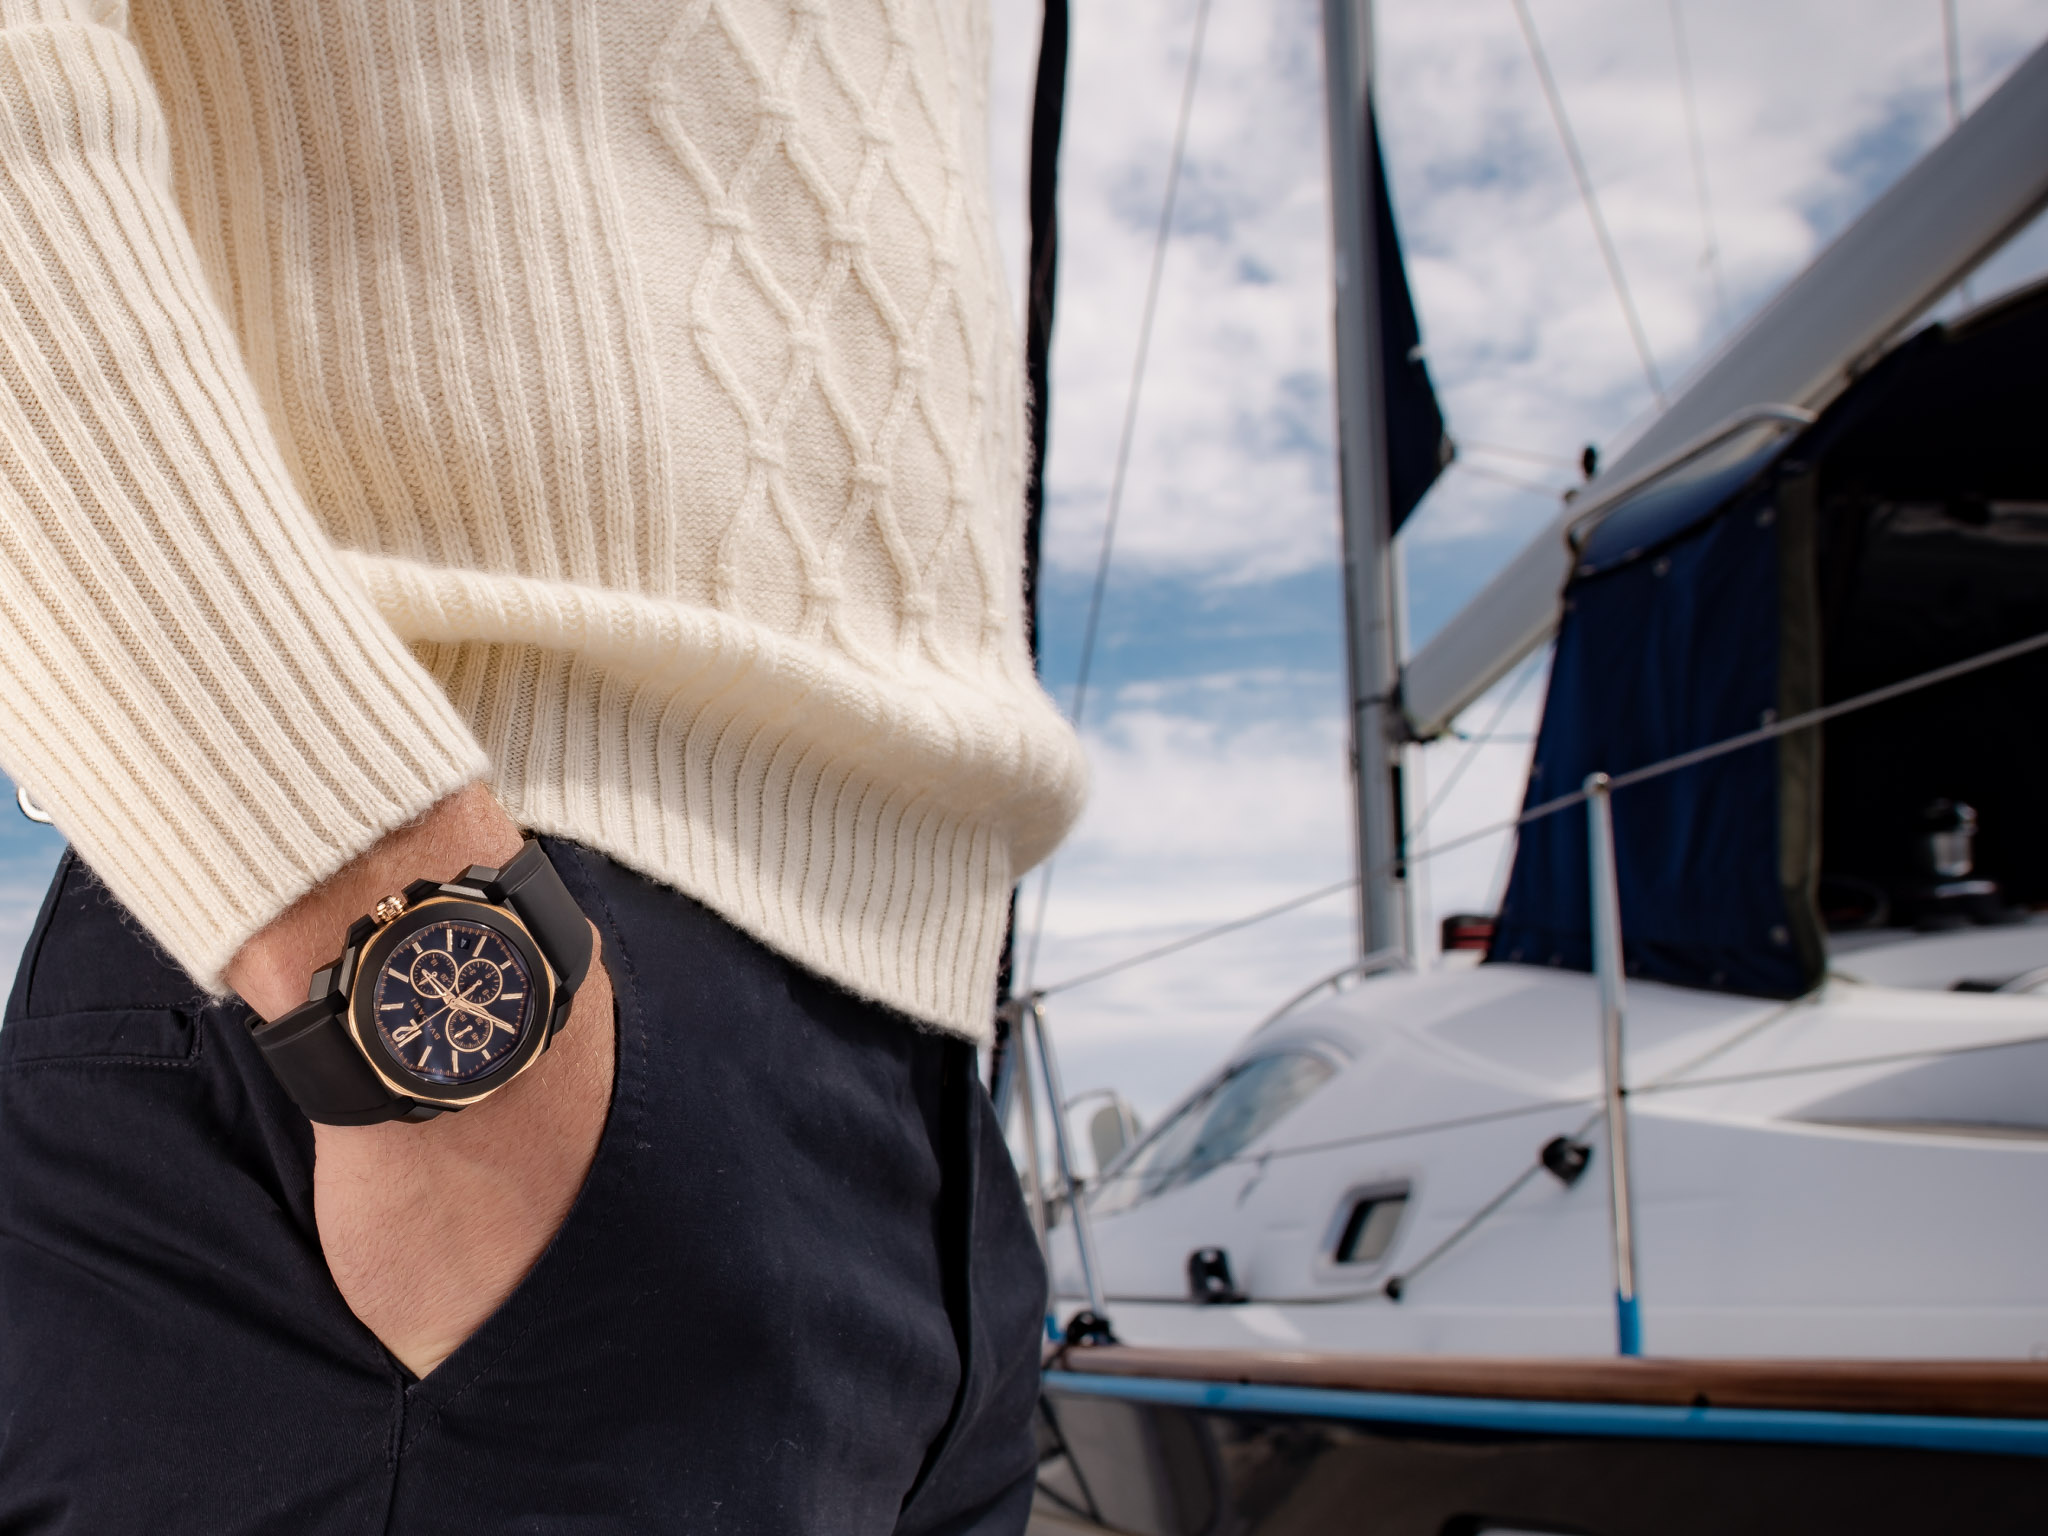 Content creator wearing luxury wrist watch against a yacht